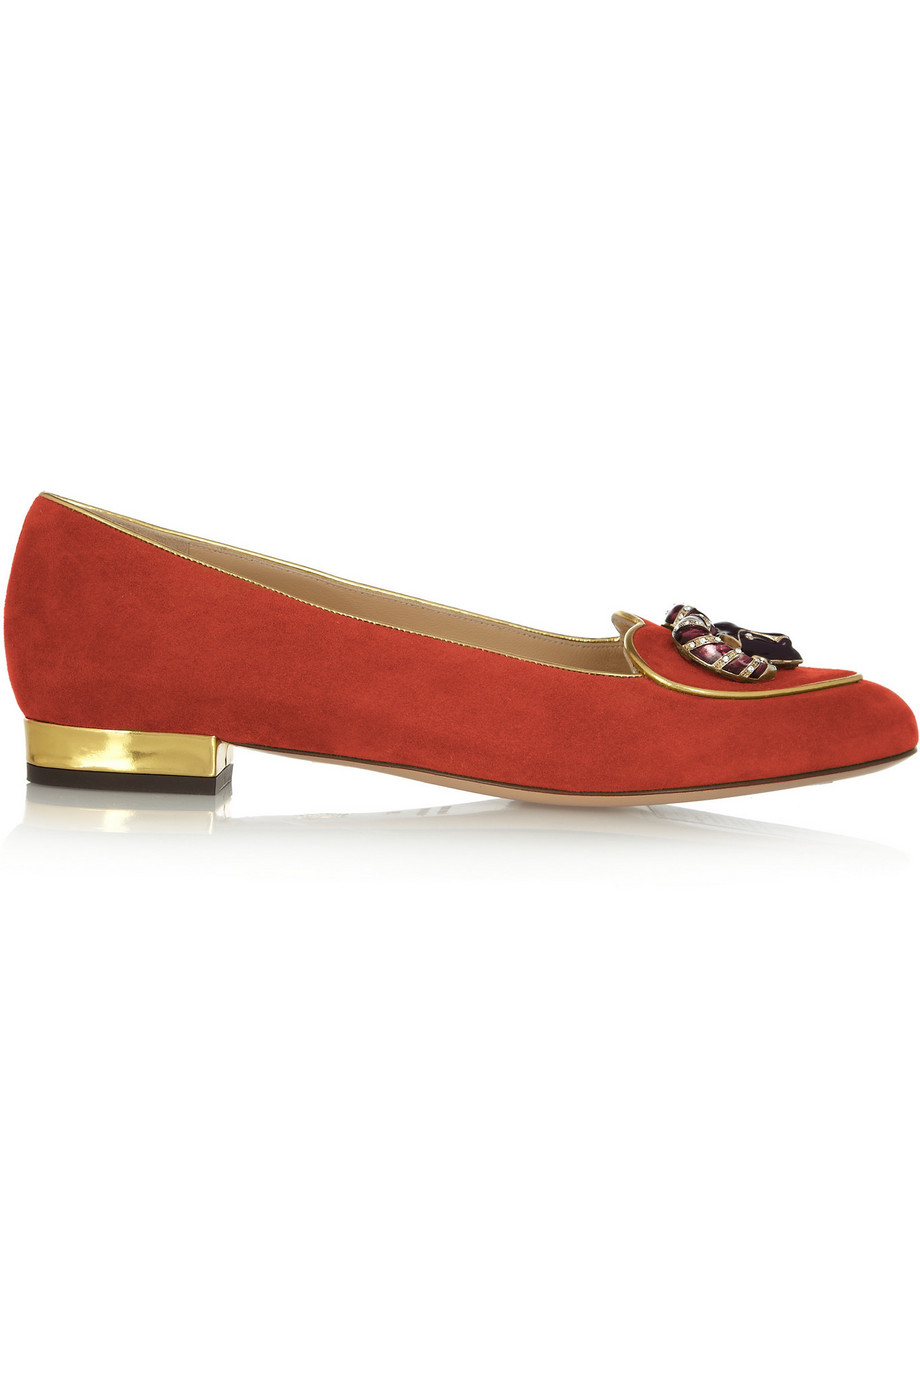 Charlotte Olympia Aries Suede Slippers, Red, Women's US Size: 3.5, Size: 34